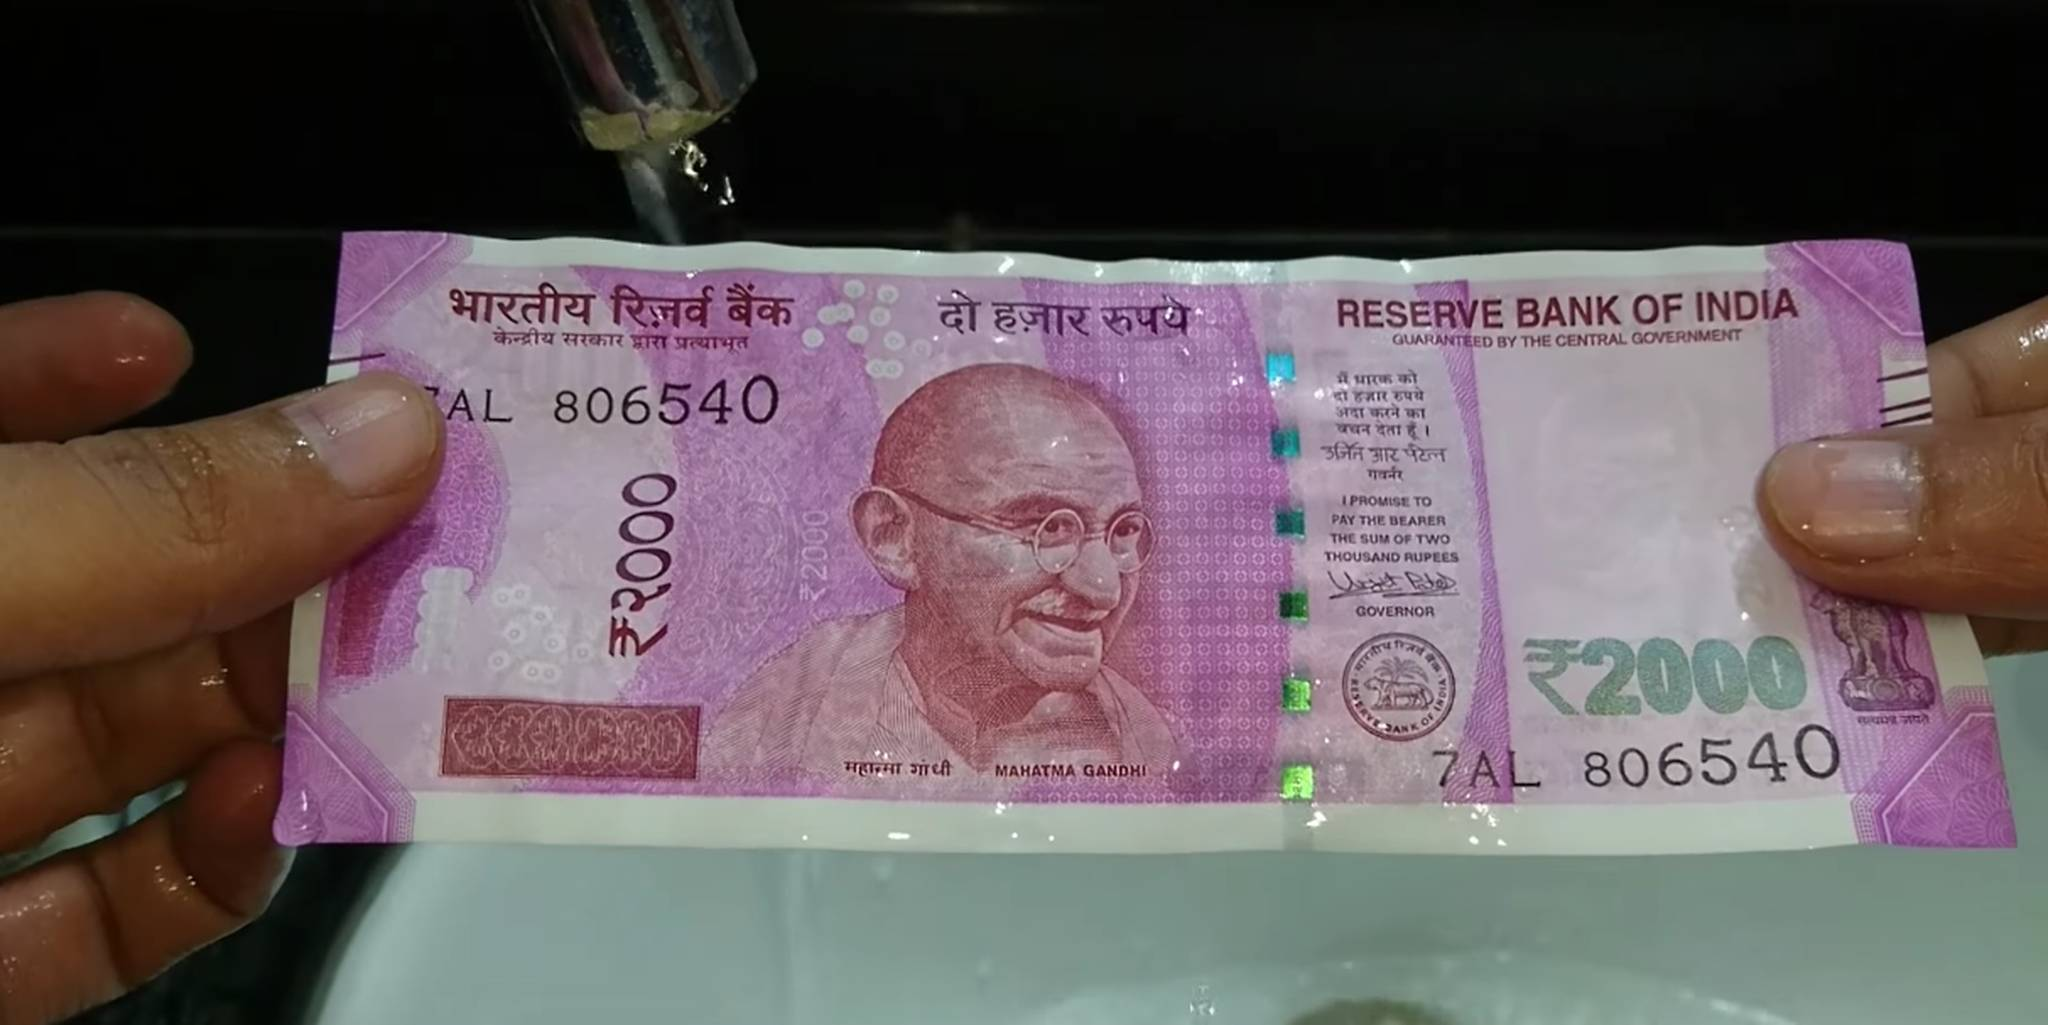 Rupee 2000 currency water test